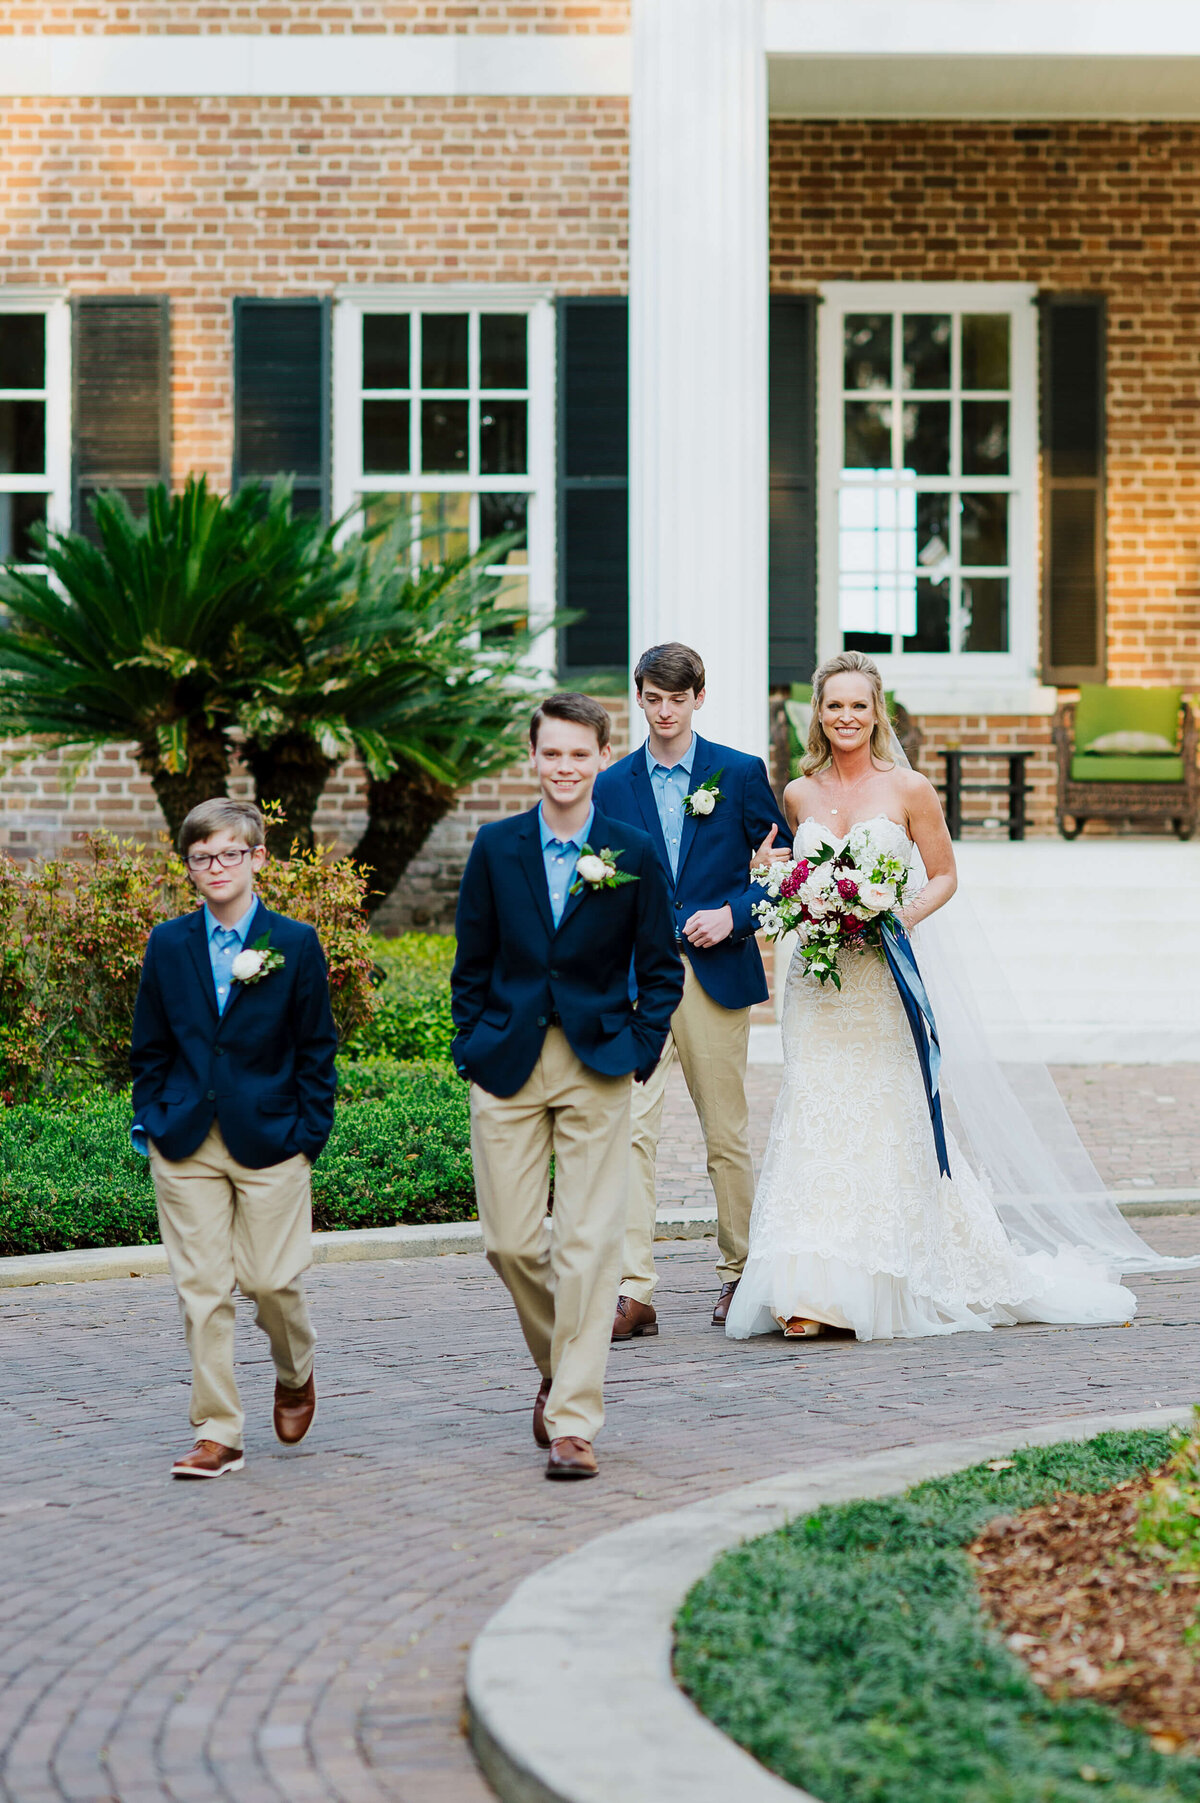 Izzy-and-co-photography-the-ford-plantation-wedding-savannah-wedding-photographer-13